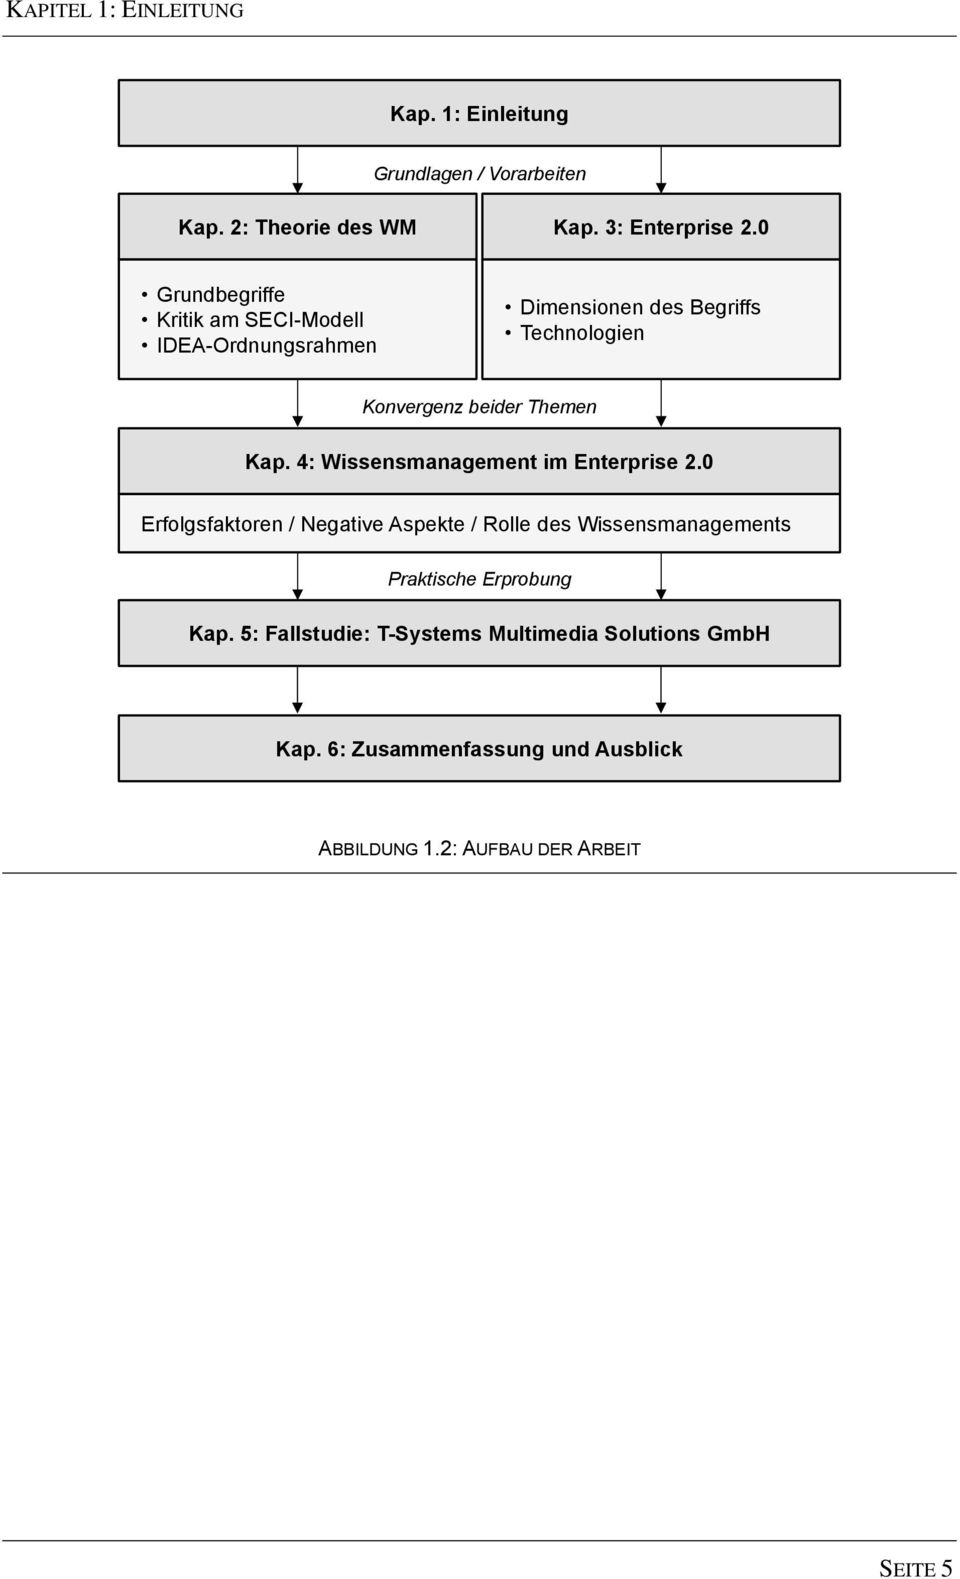 Kap. 4: Wissensmanagement im Enterprise 2.